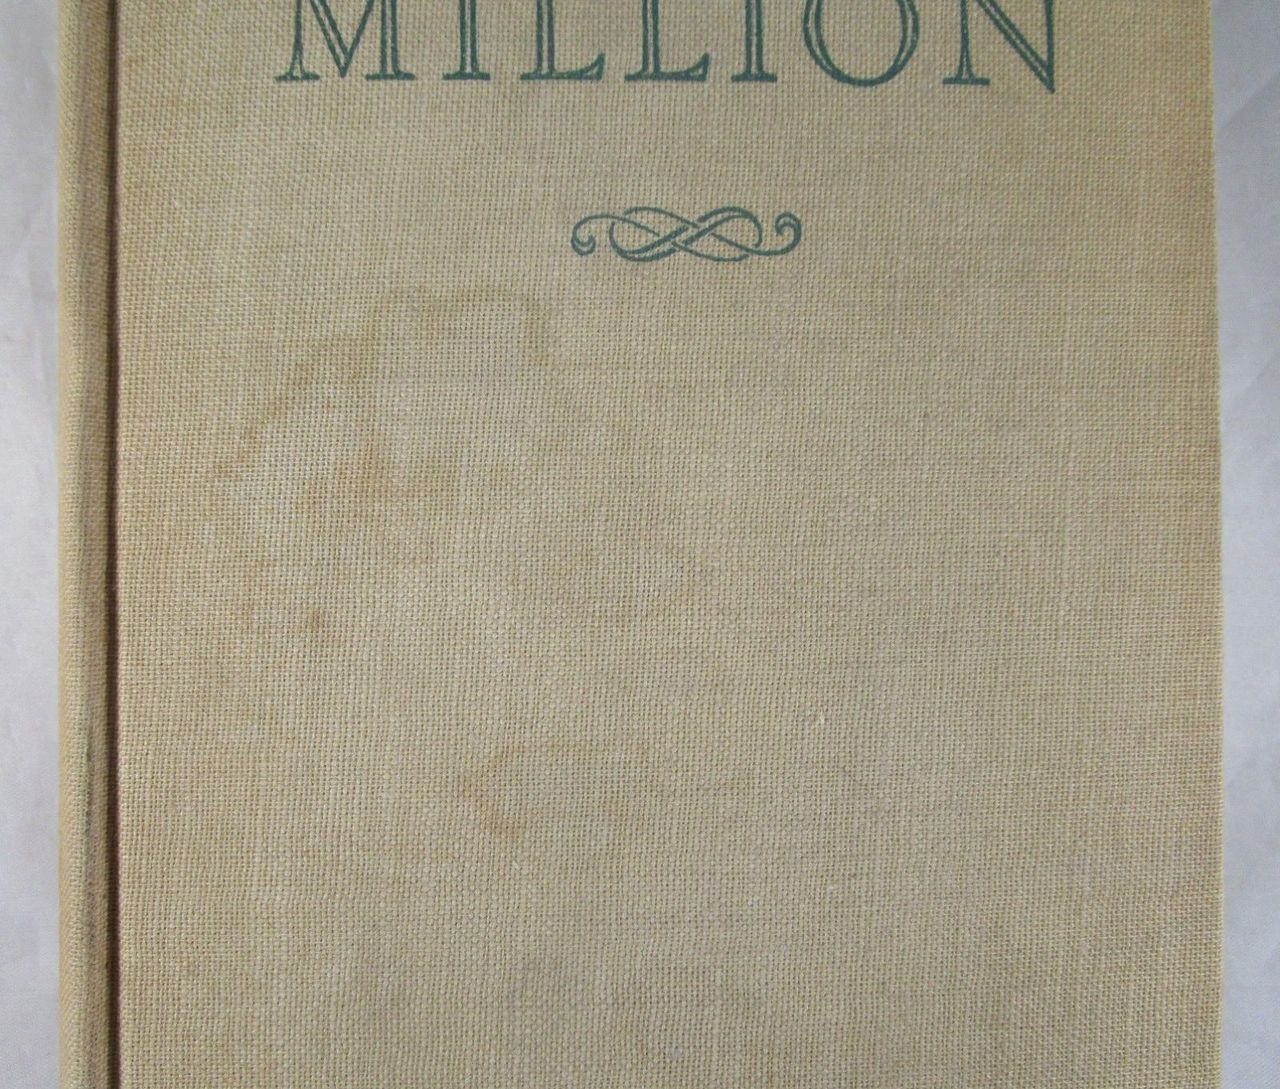 A COOL MILLION: THE DISMANTLING OF LEMUEL PITKIN, Nathanael West - 1934 [1st Ed]